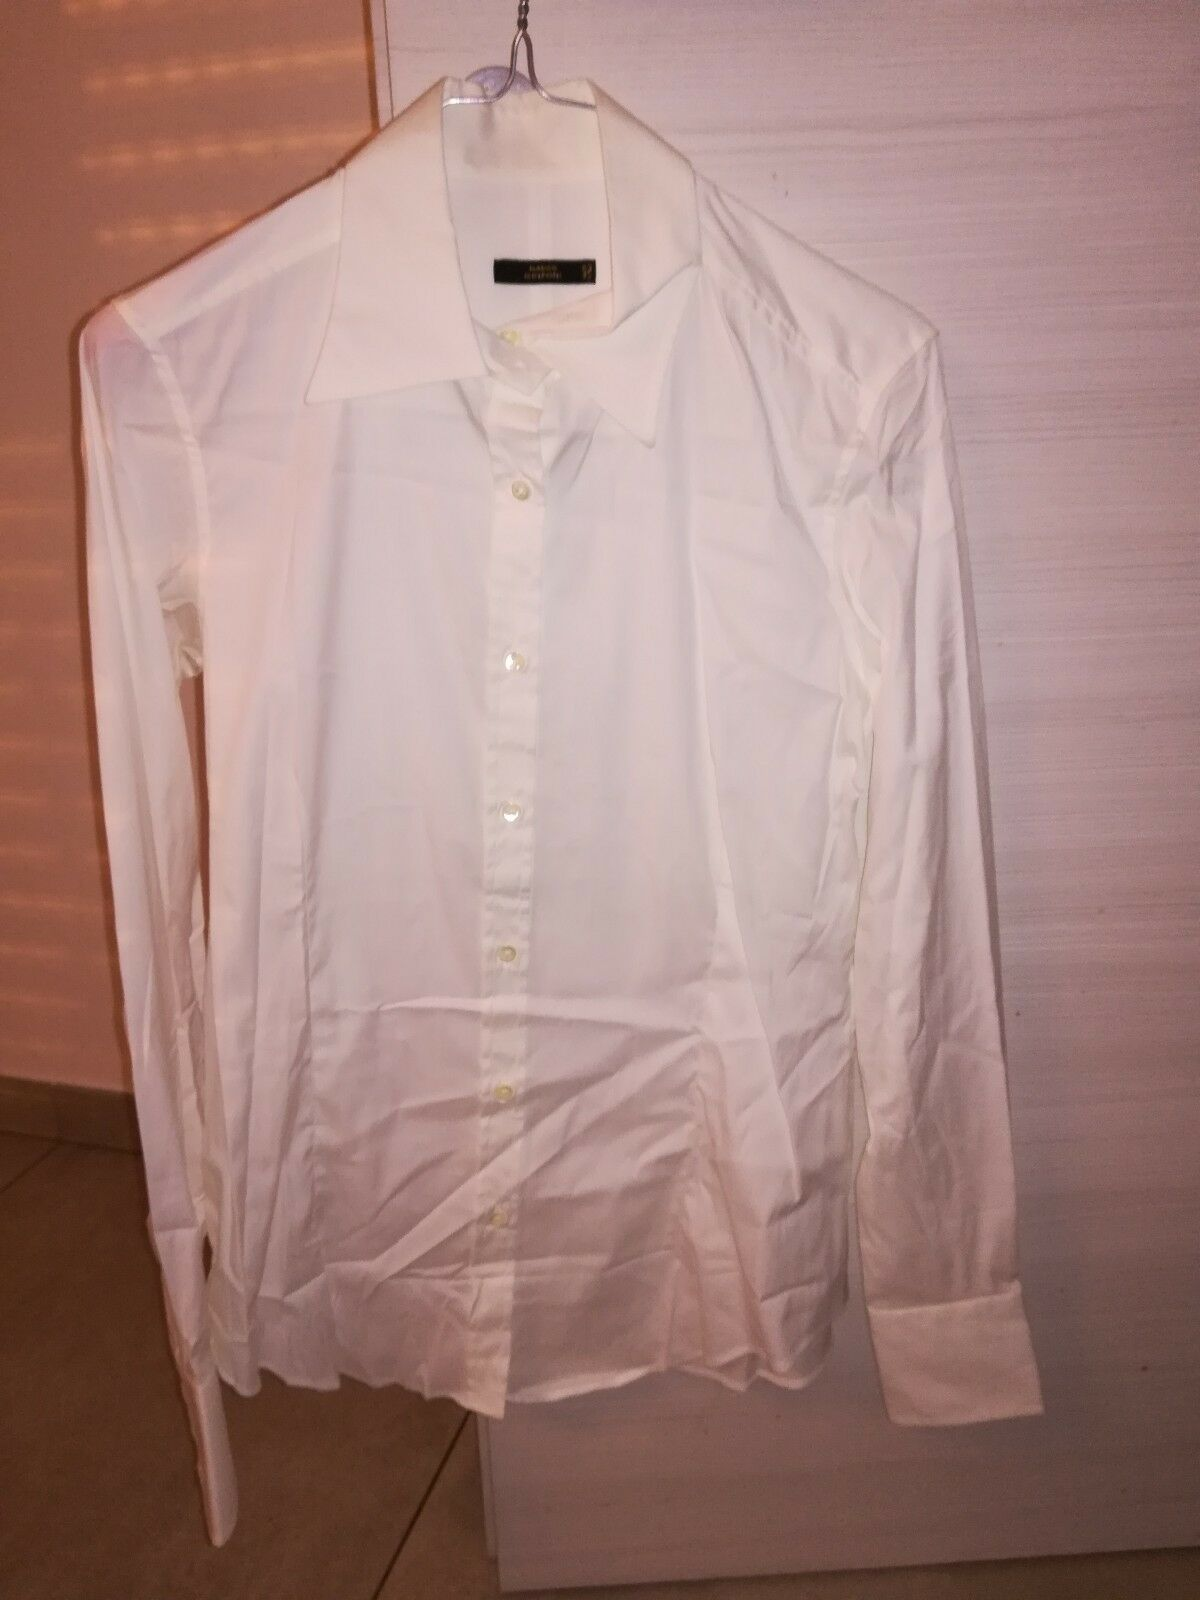 06bc29ab967ebe MAURO GRIFONI Donna TG 46 colore MADE IN ITALY Camicia Bianco ...